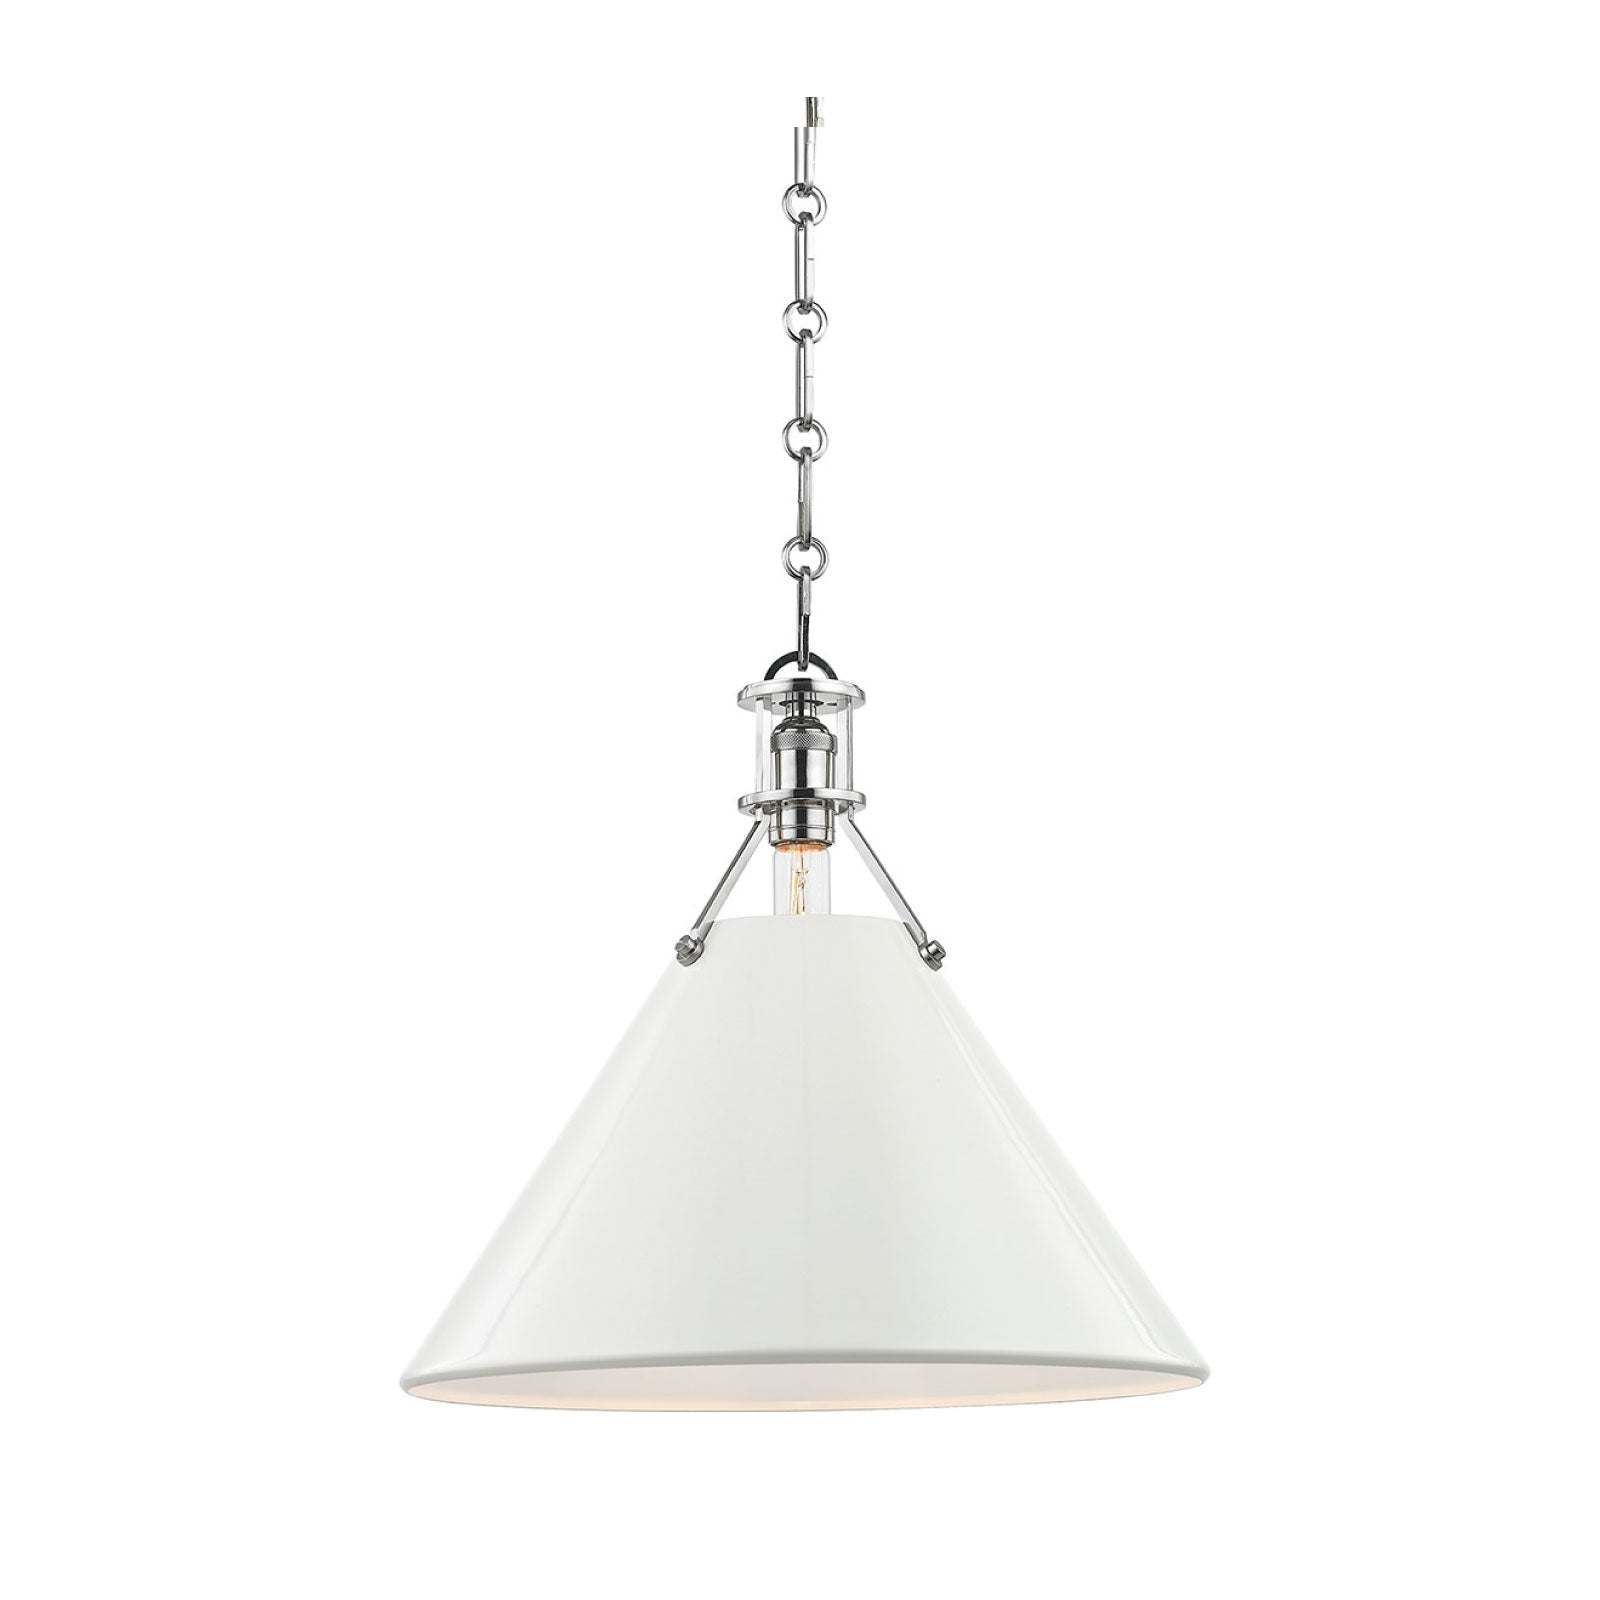 Charles Pendant in Cream and Nickel